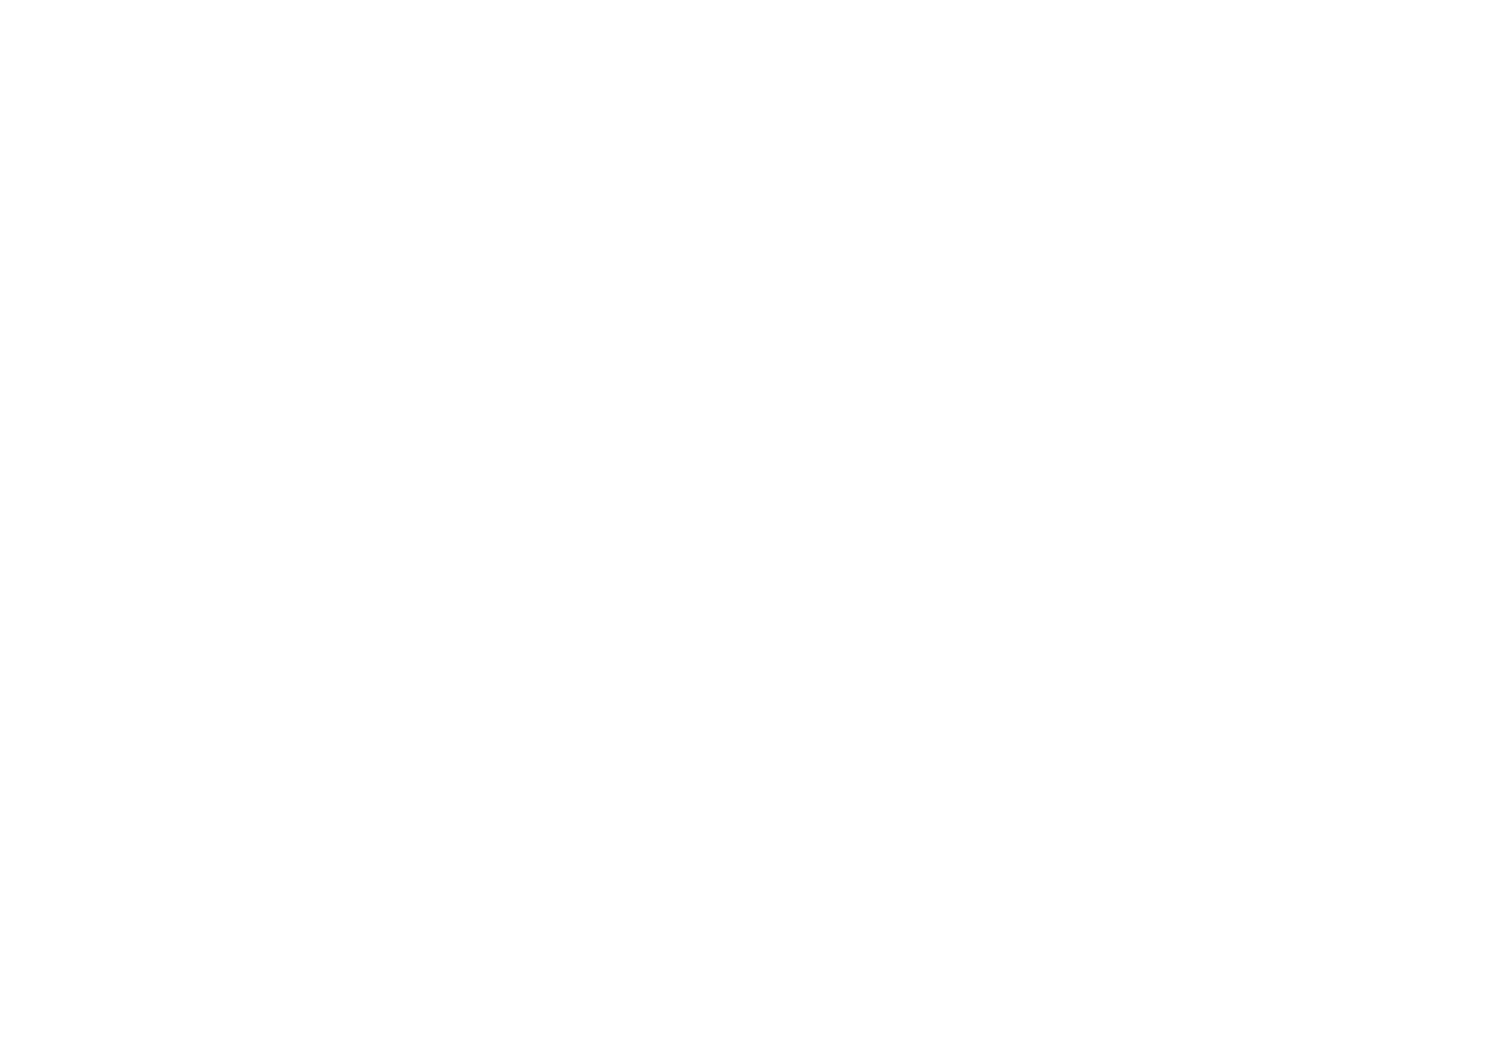 Essex Vocal Coaching